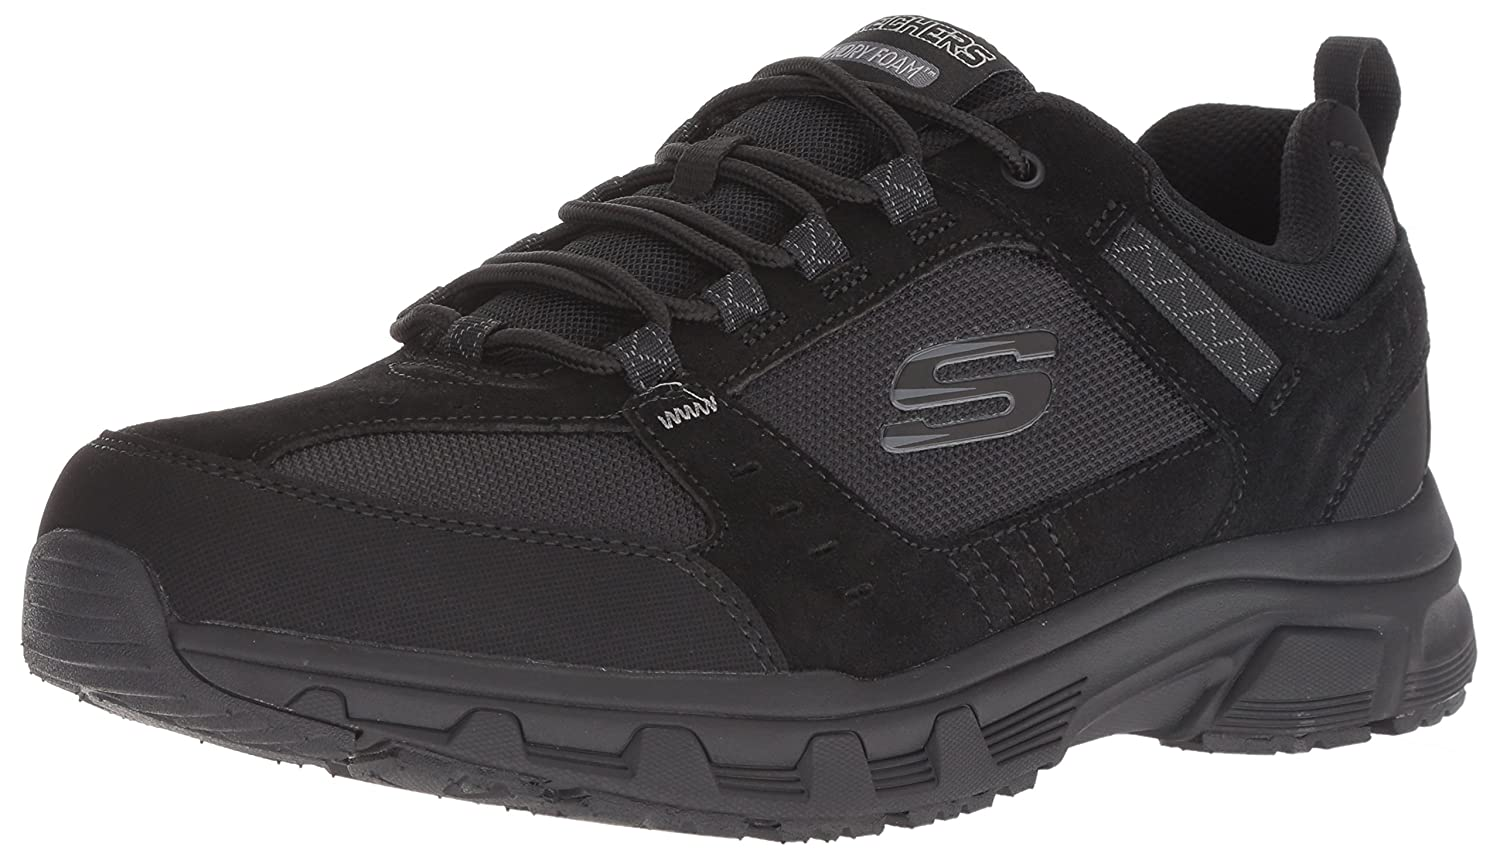 Skechers Men's Oak Canyon Oxford